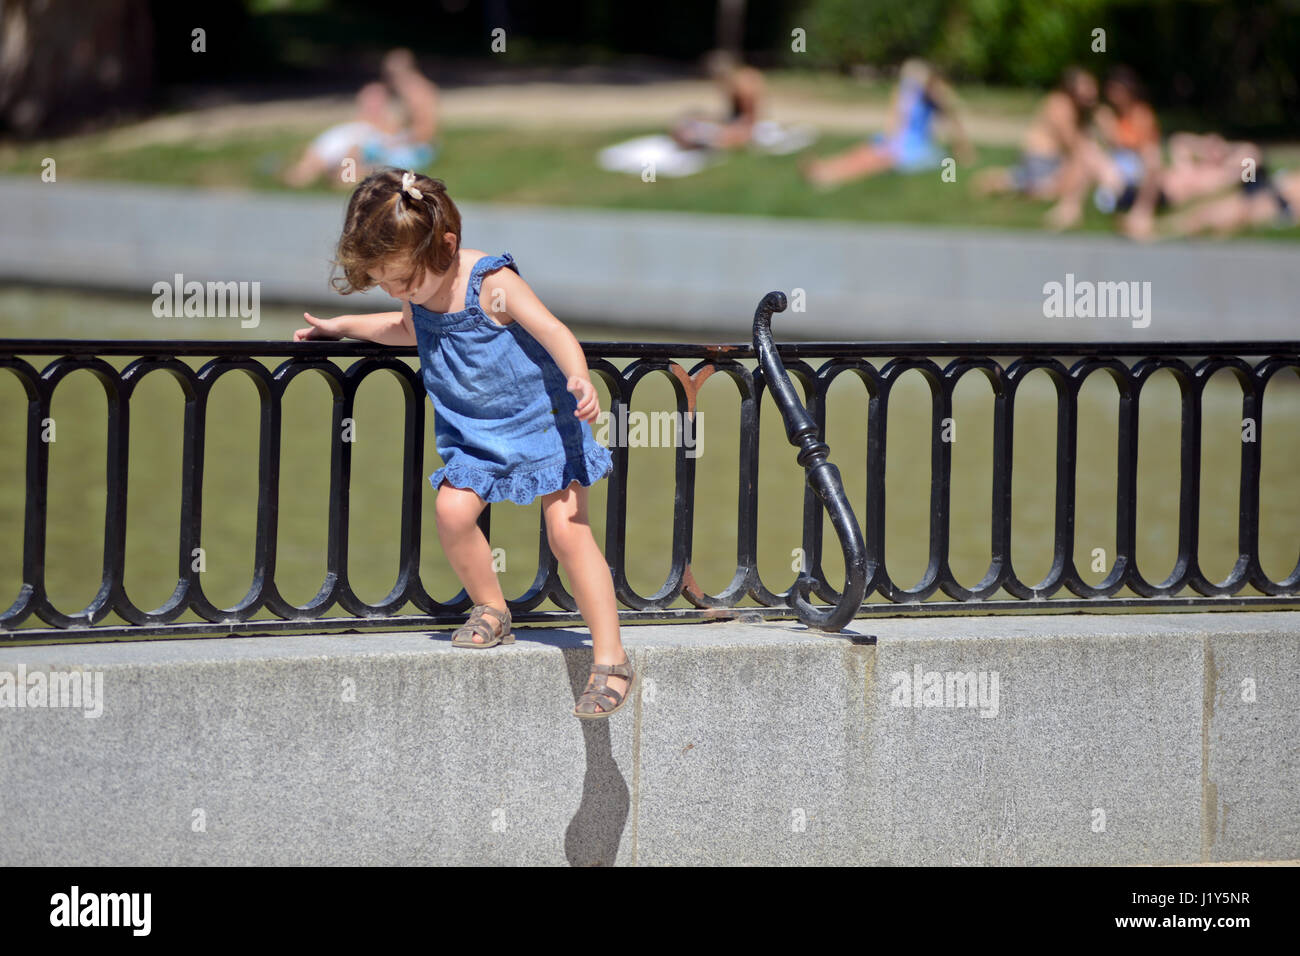 A little girl stepping down a fence. Parque del Retiro, Madrid, Spain - Stock Image